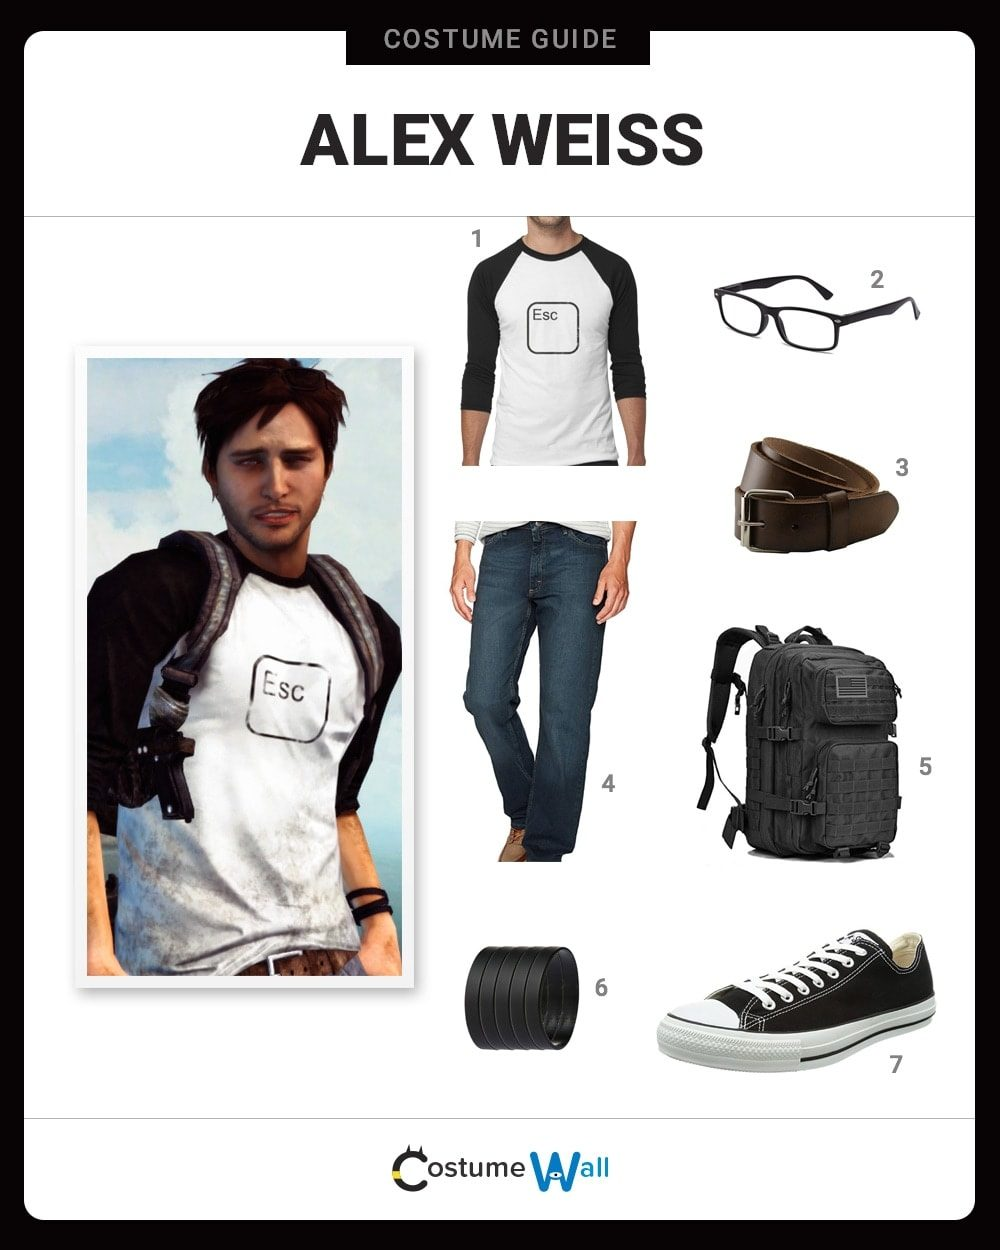 Alex Weiss Costume Guide